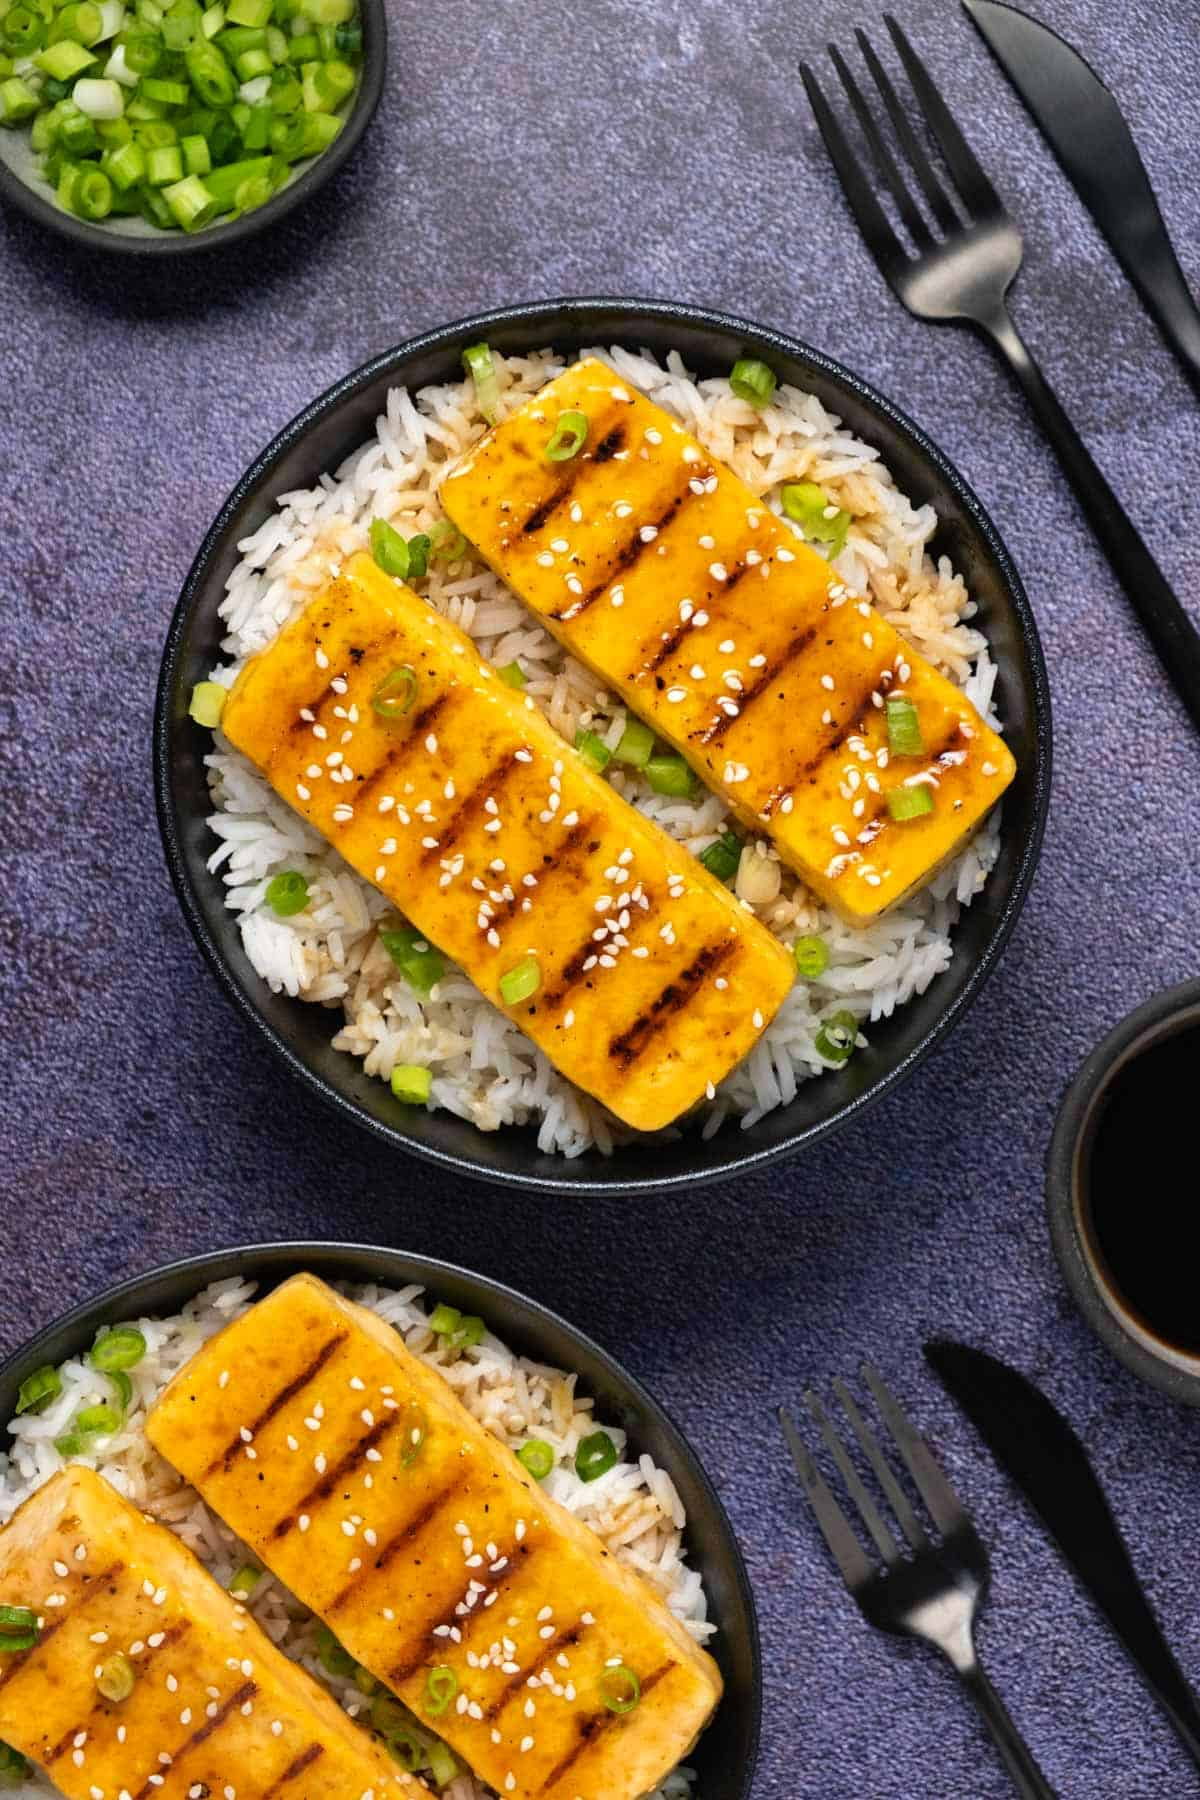 Grilled tofu served with rice and chopped green onions in a black bowl.